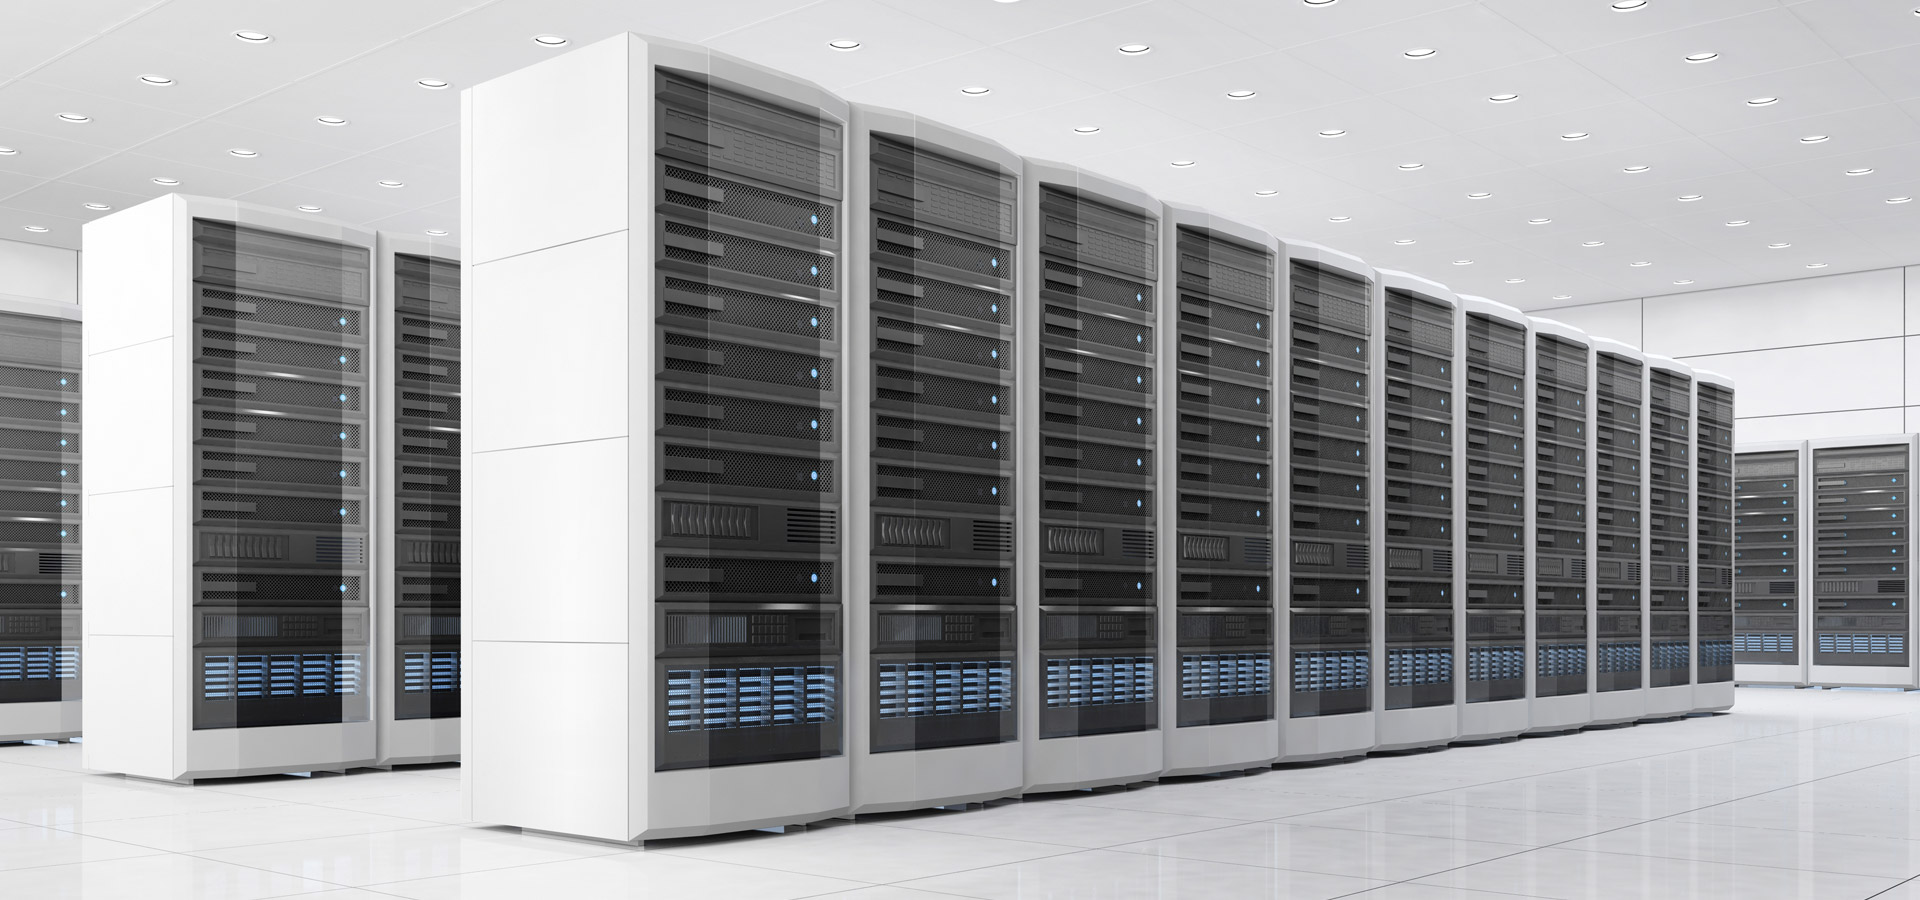 DATA CENTER POWER MANAGEMENT